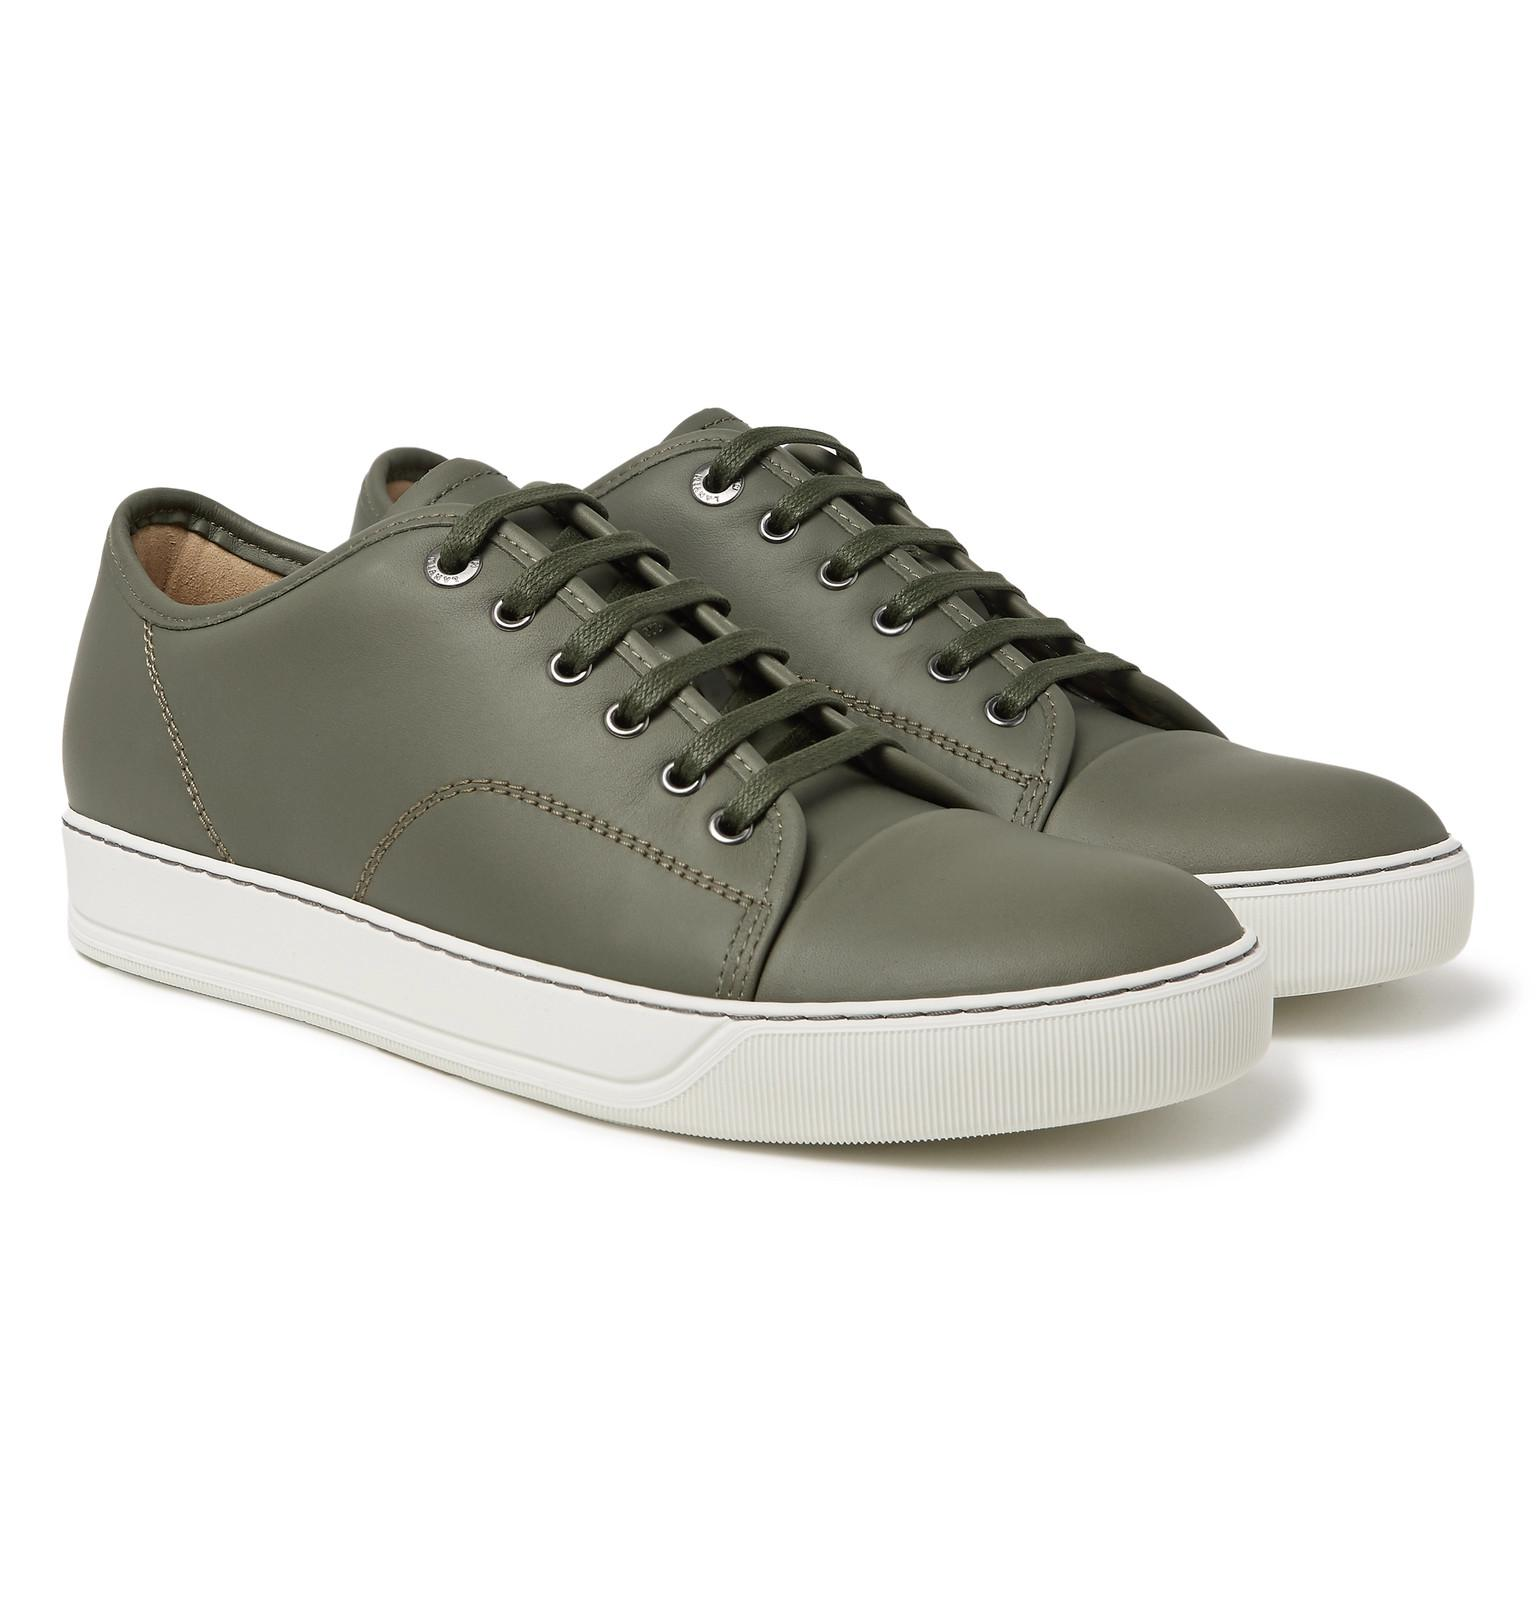 discount enjoy Lanvin Cap-Toe Matte-Leather Sneakers cheap sale ebay from china online jAycqN